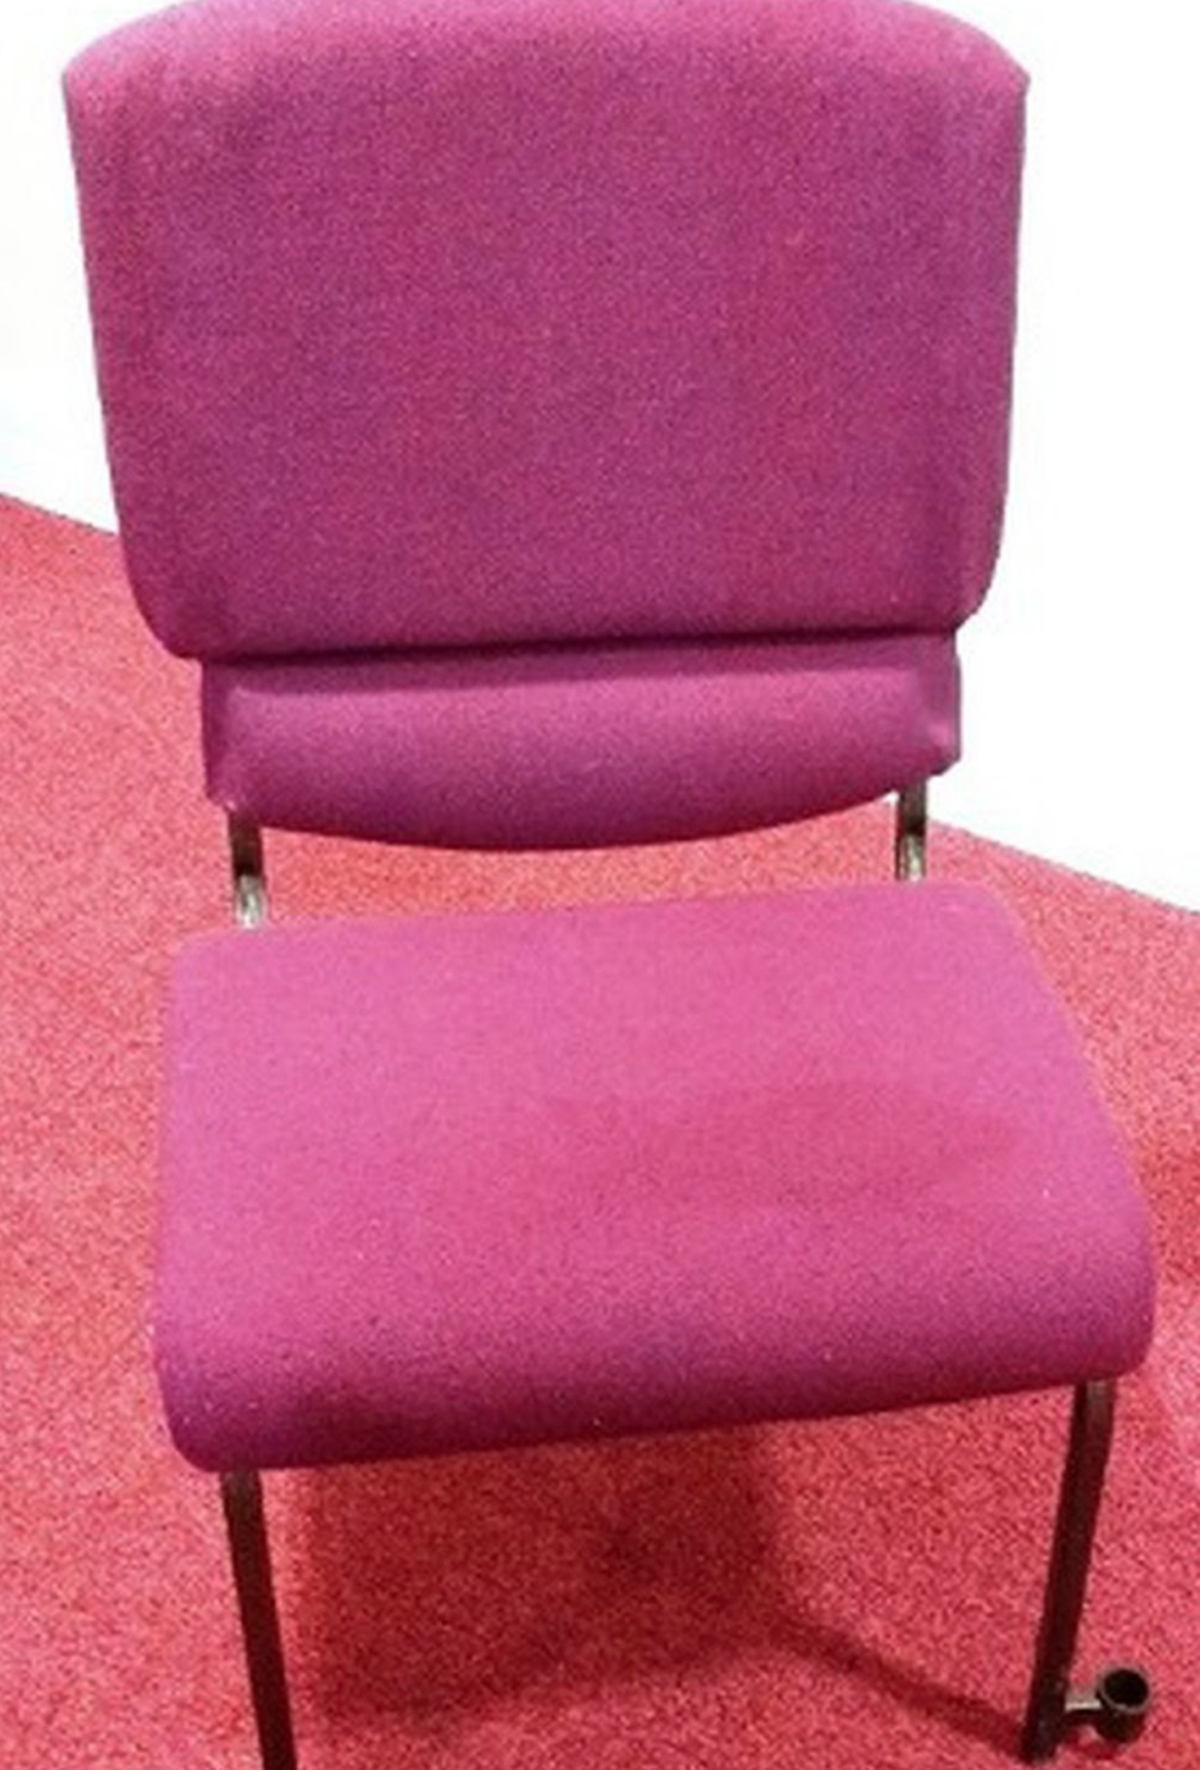 Secondhand Chairs And Tables Linking Conference Chairs